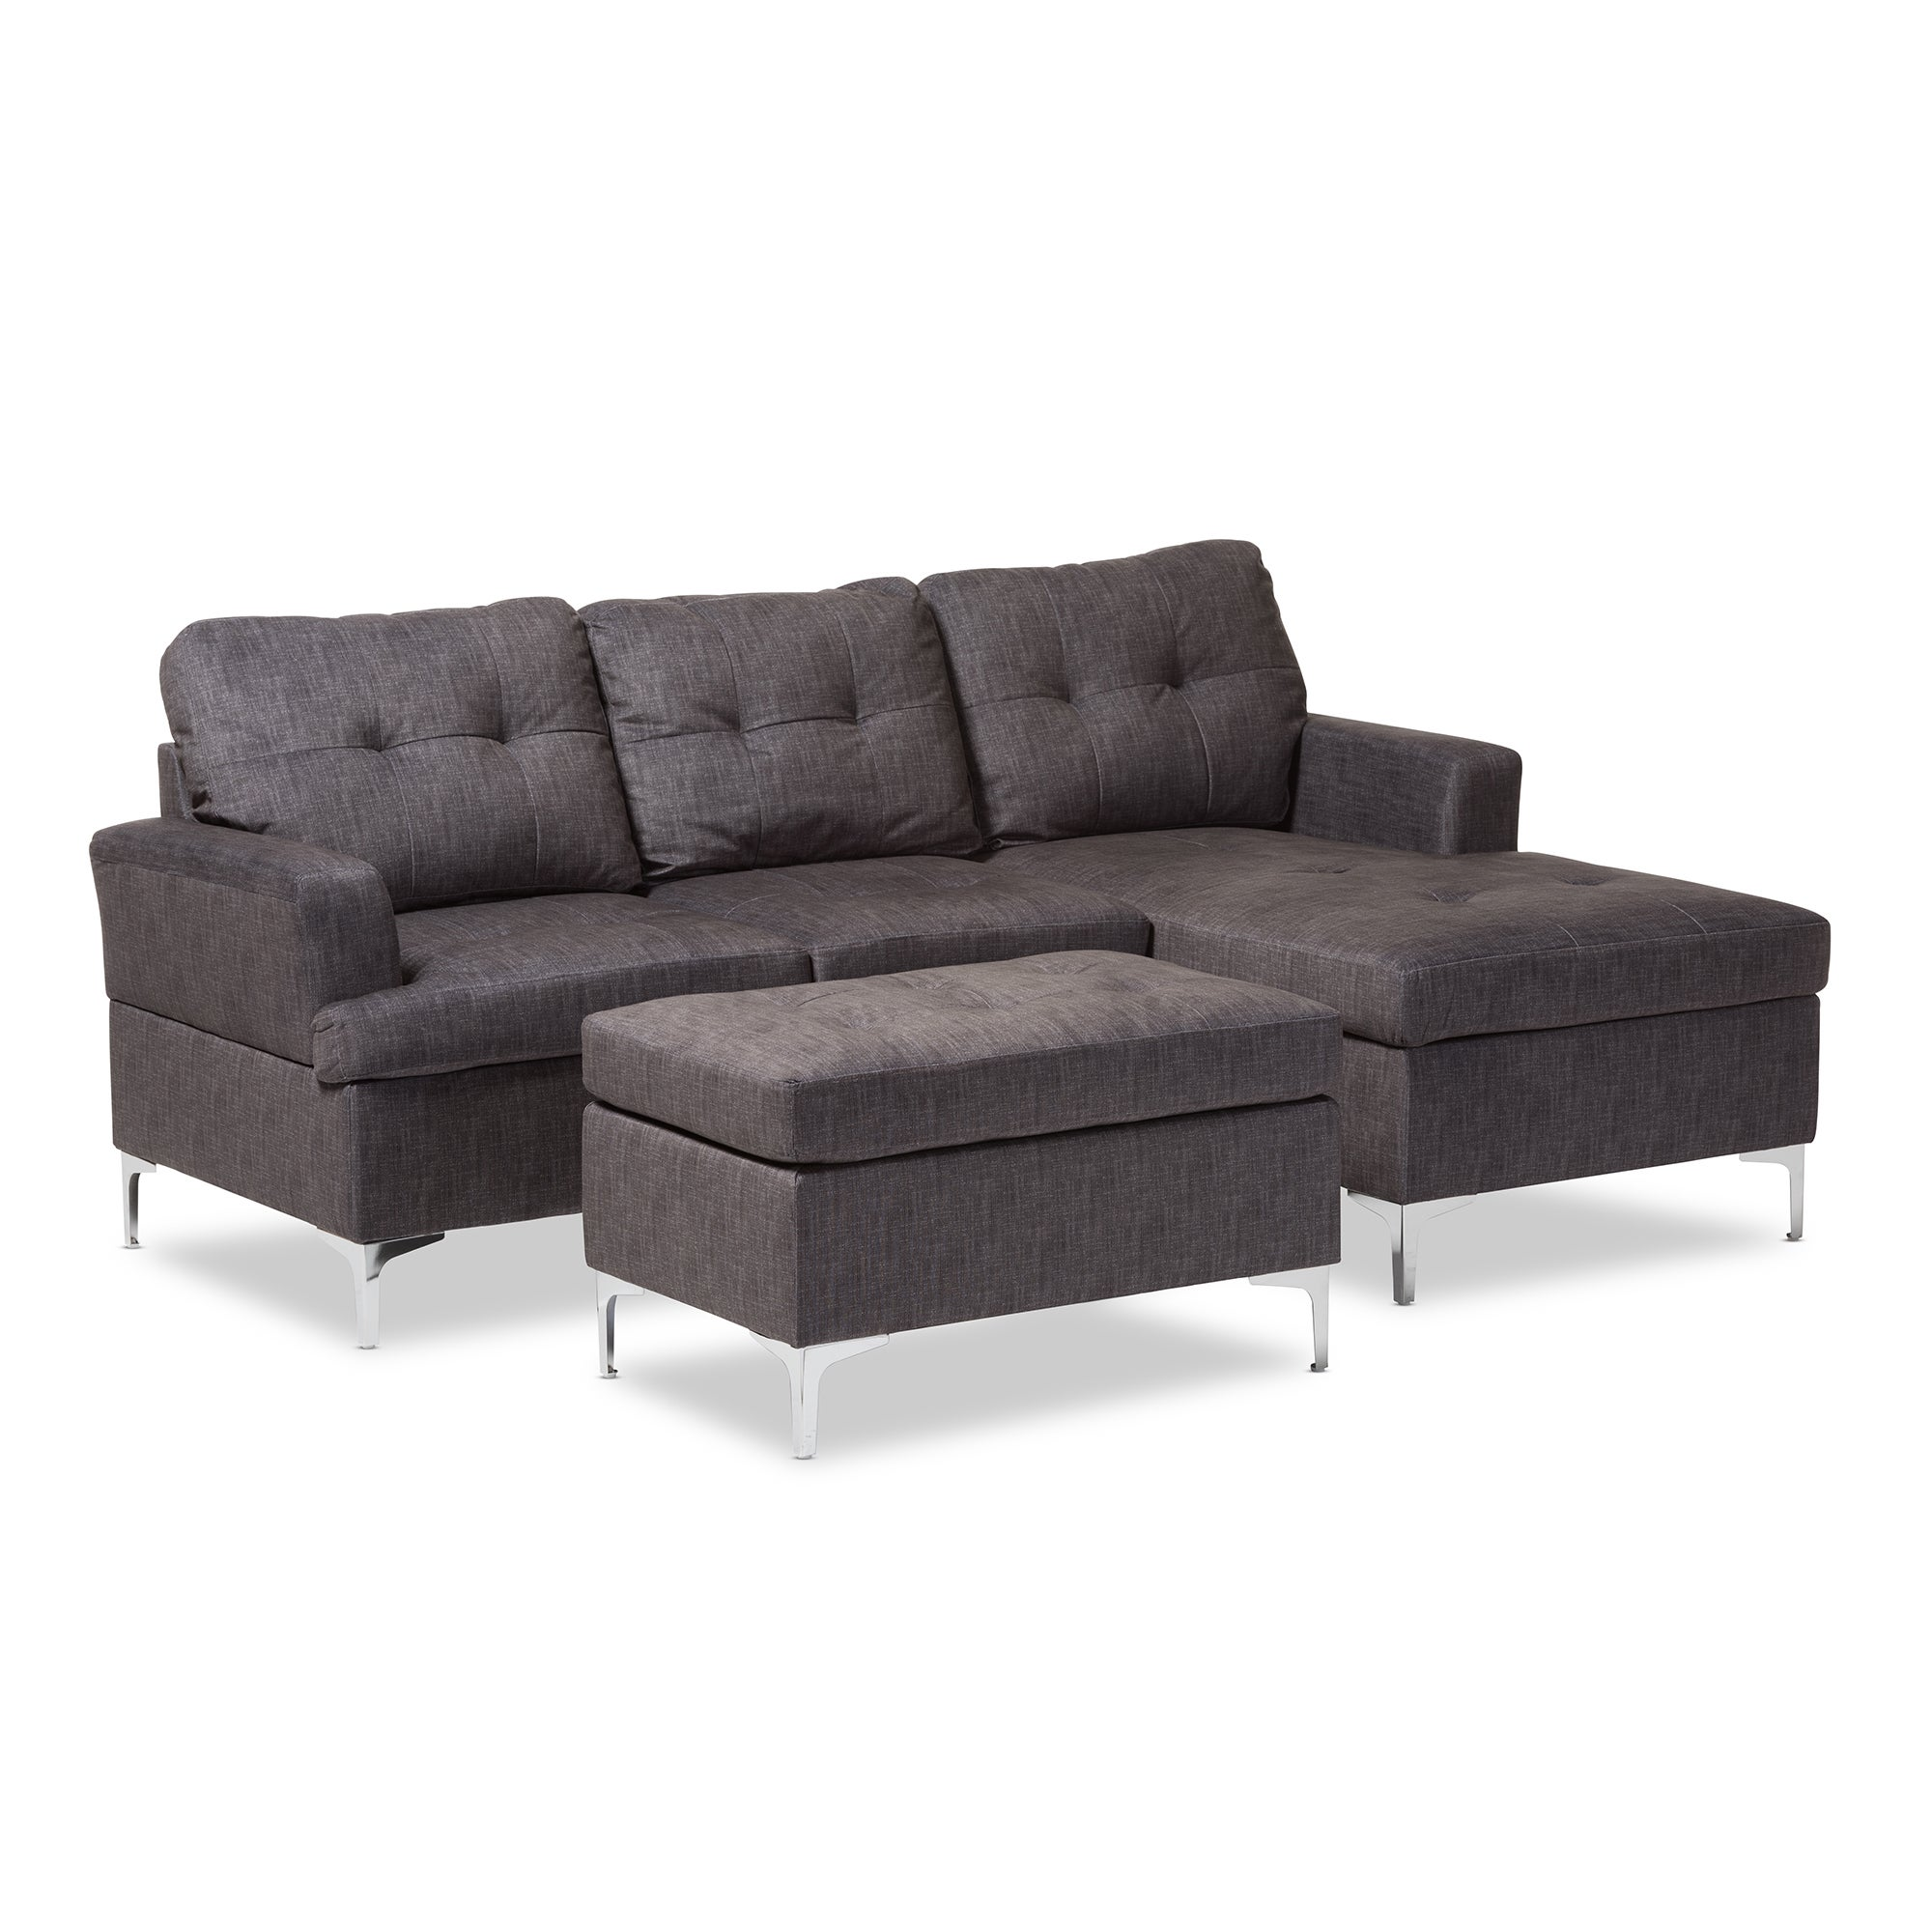 Shop Baxton Studio Haemon Modern And Contemporary Grey Fabric Upholstered  3 Piece Sectional Sofa With Ottoman Set   Free Shipping Today    Overstock.com   ...